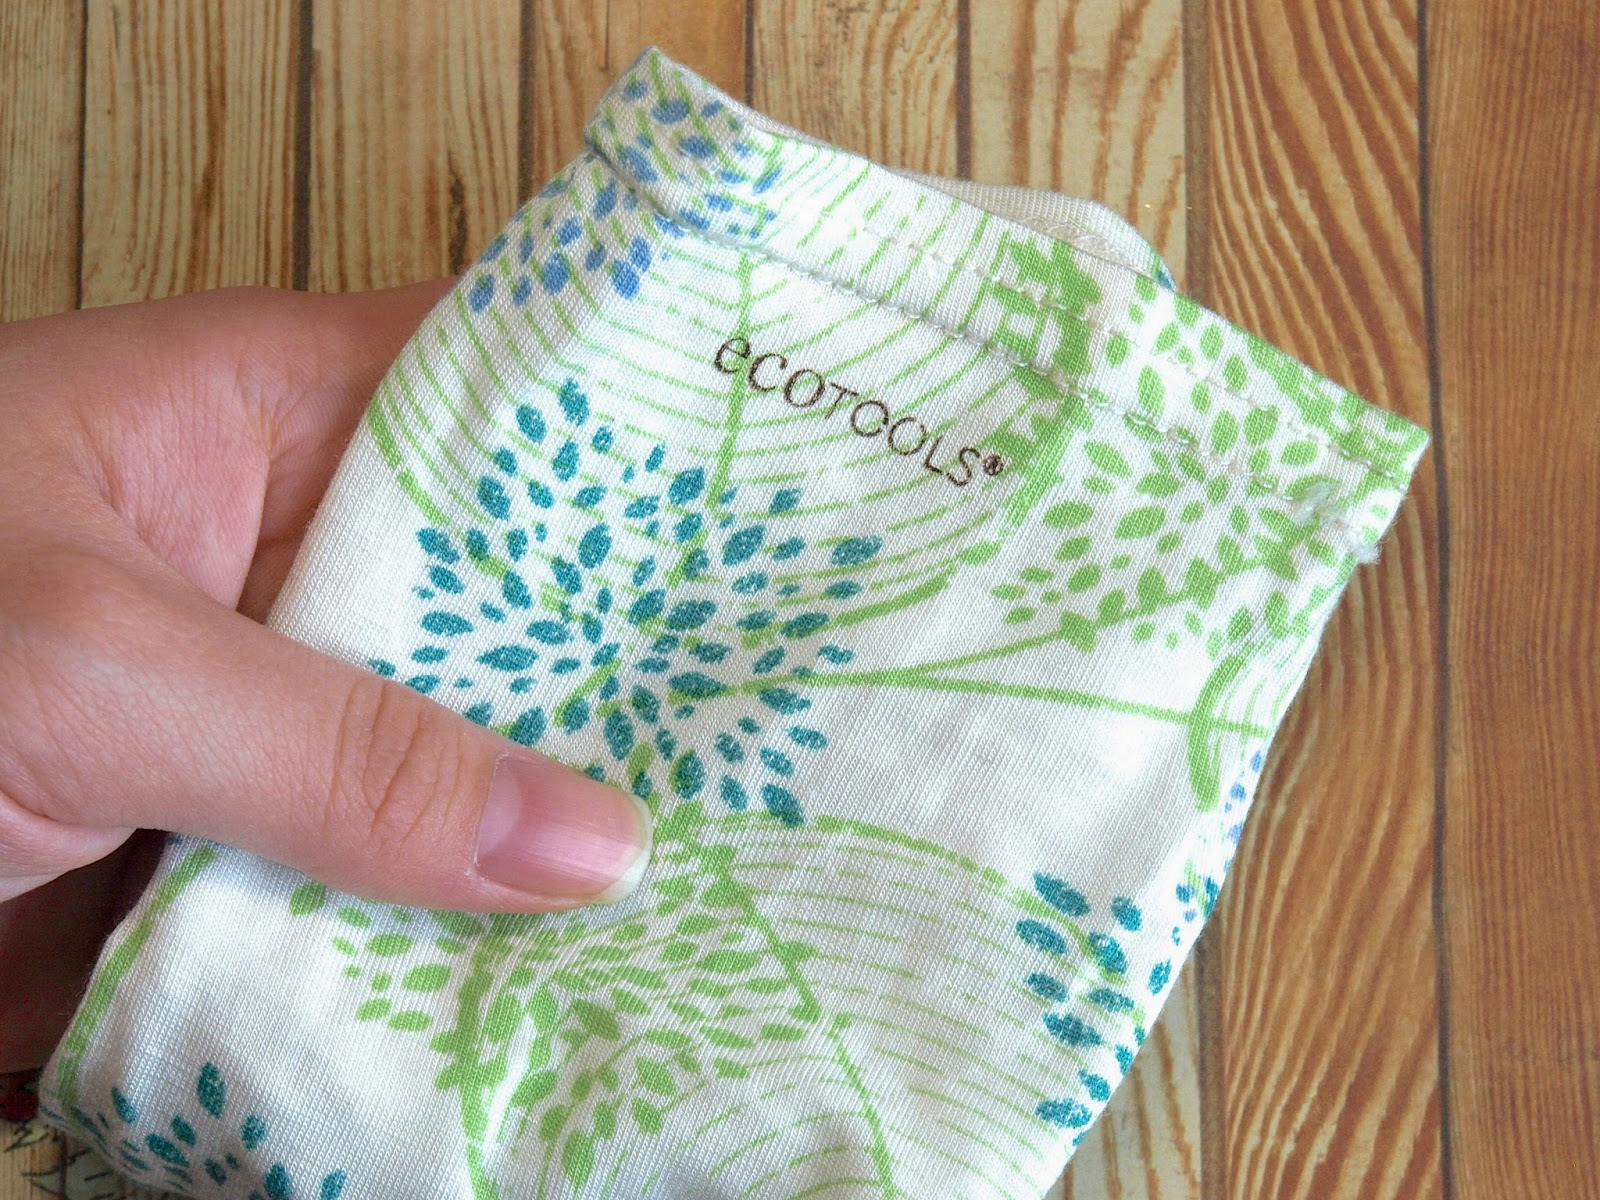 EcoTools Spa Moisture Socks review